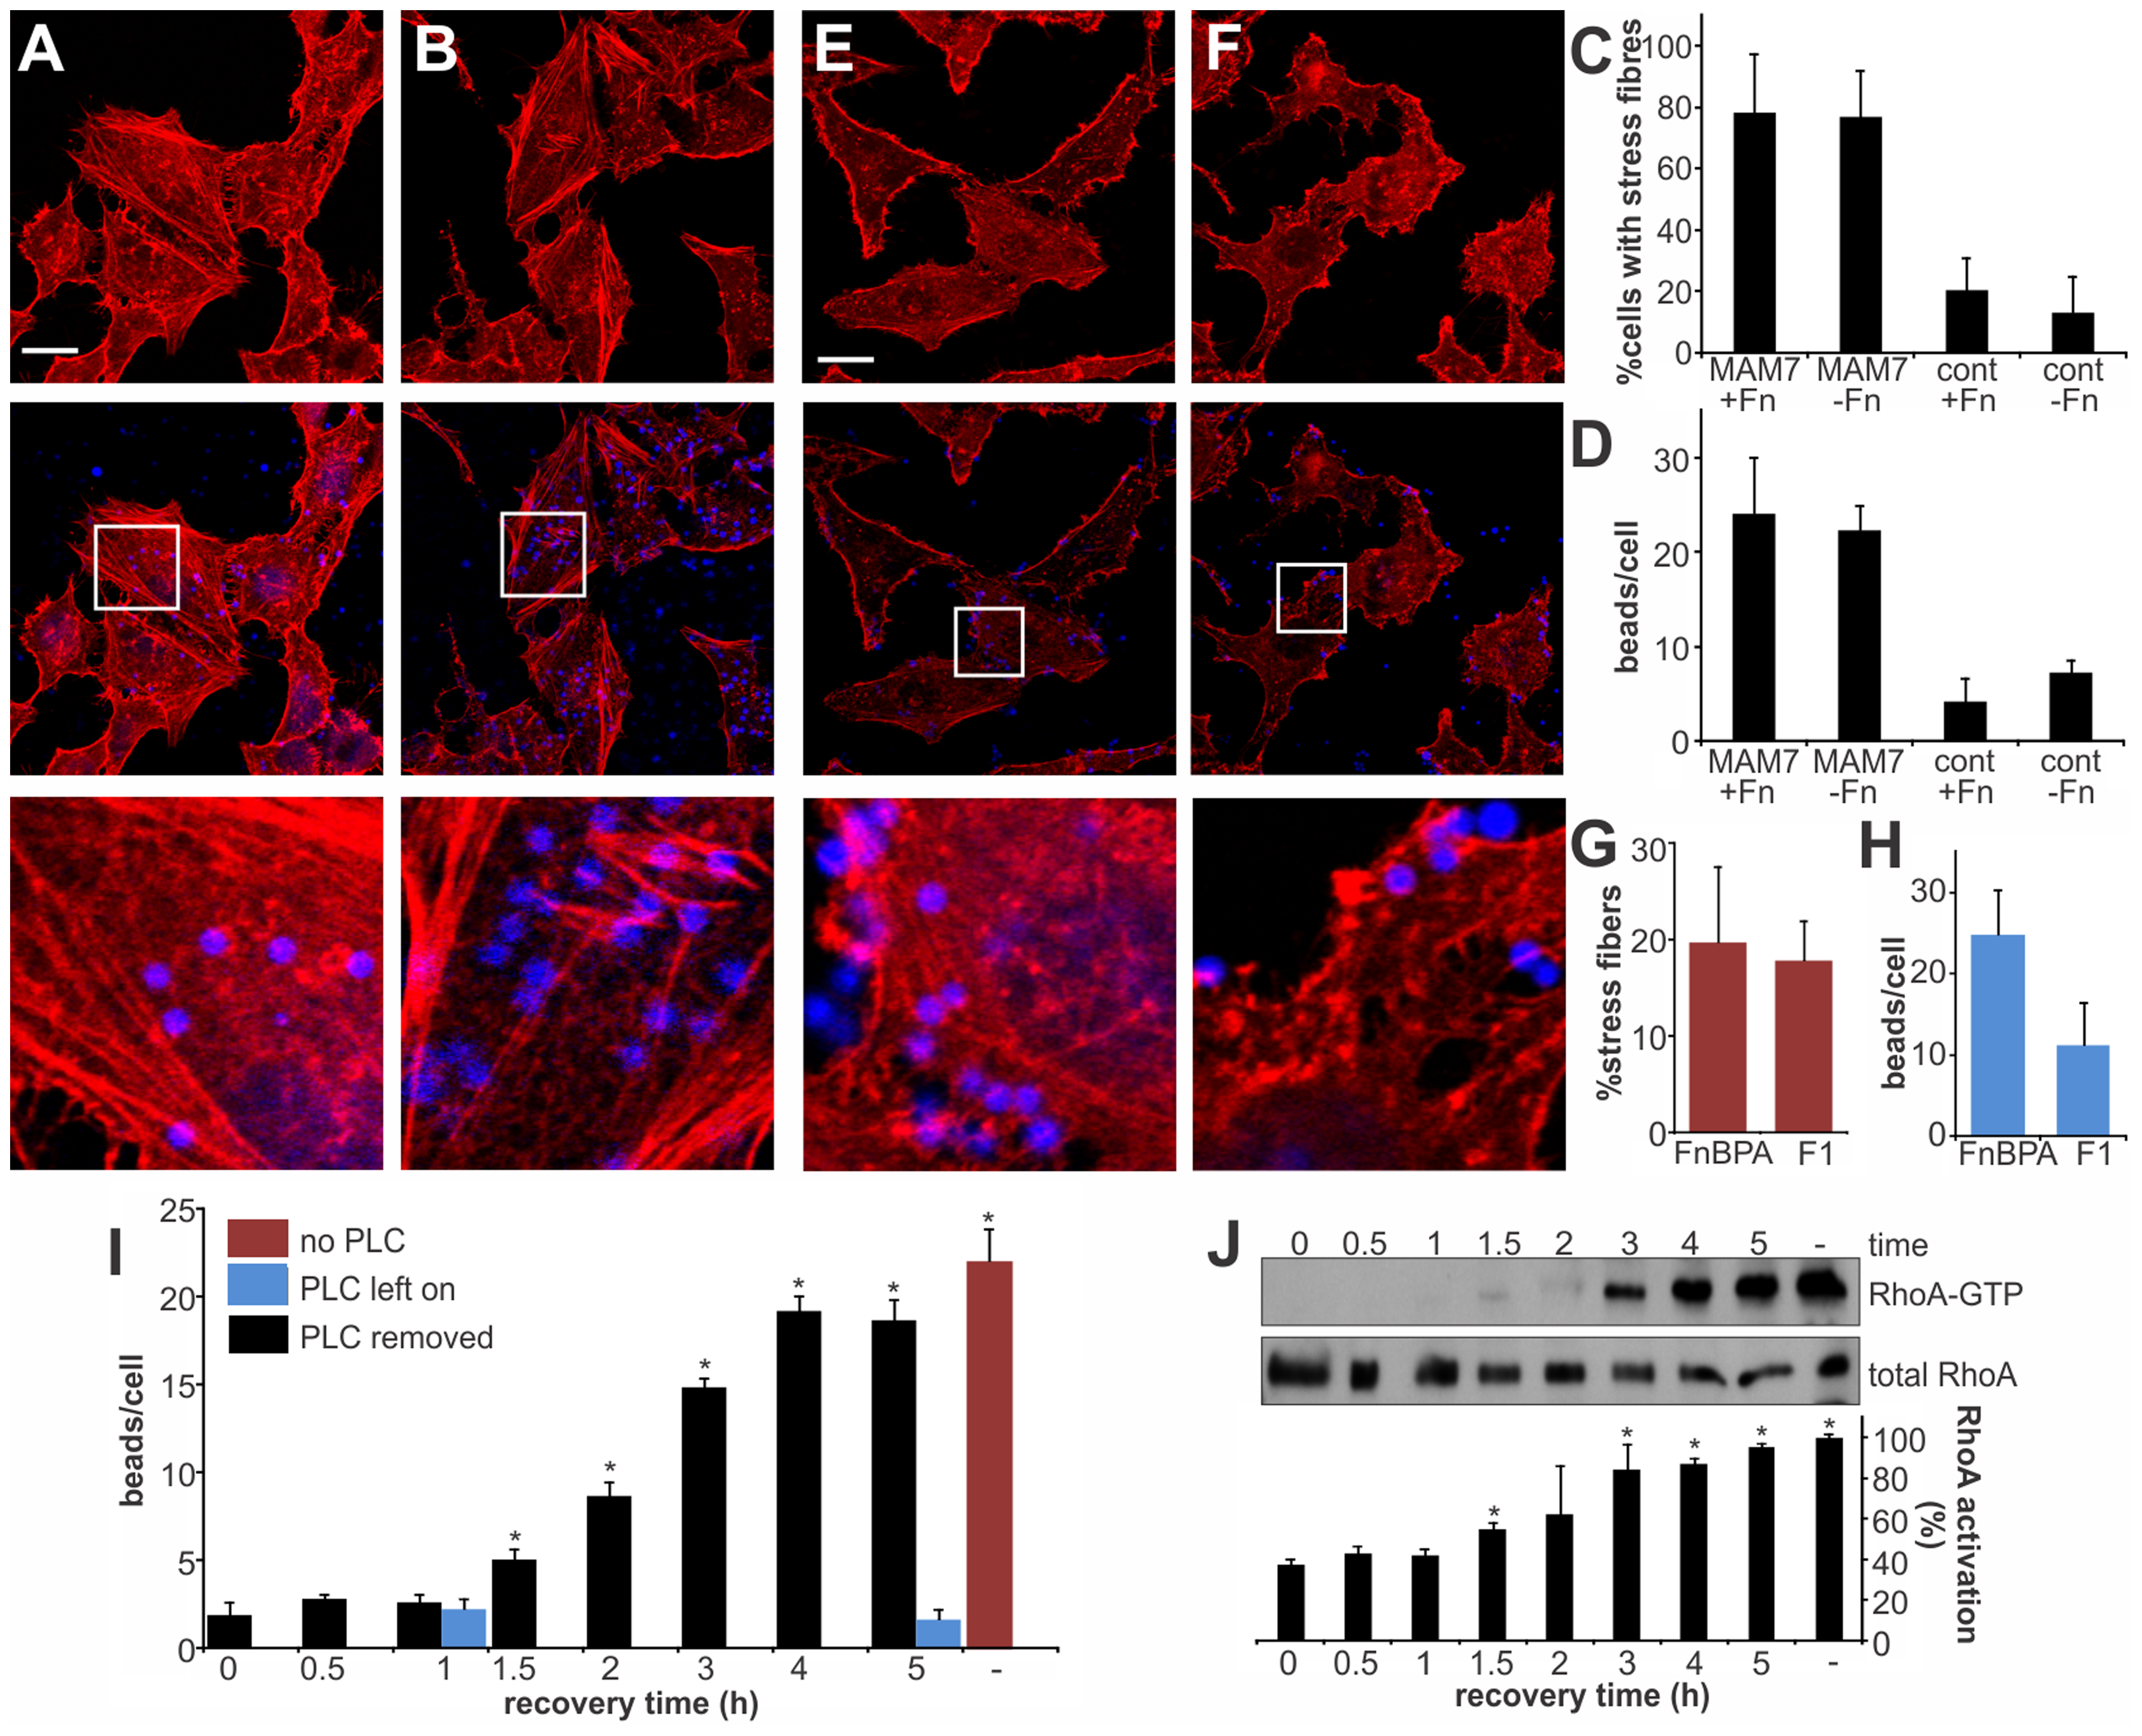 RhoA activation depends on MAM binding to phosphatidic acids and is independent of the co-receptor fibronectin.